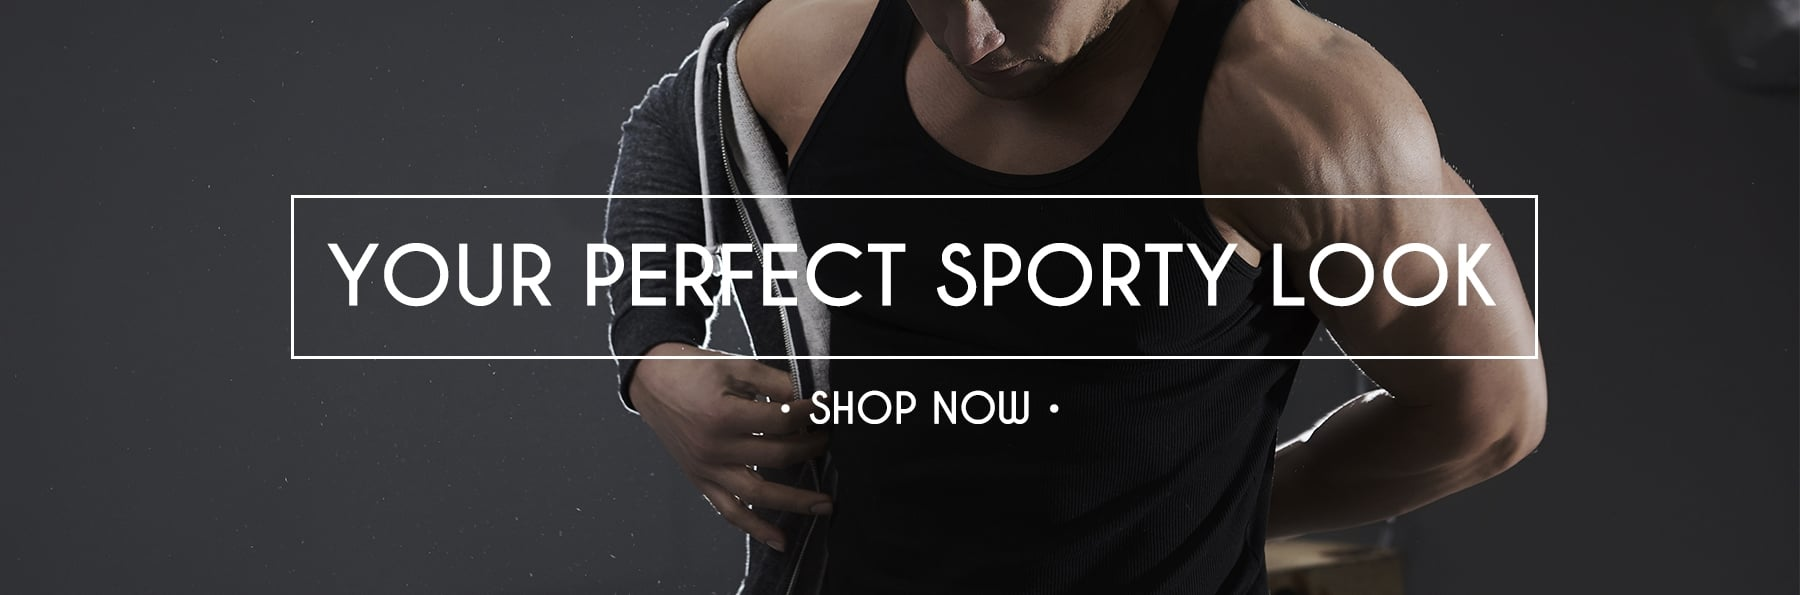 Your Perfect Sporty Look